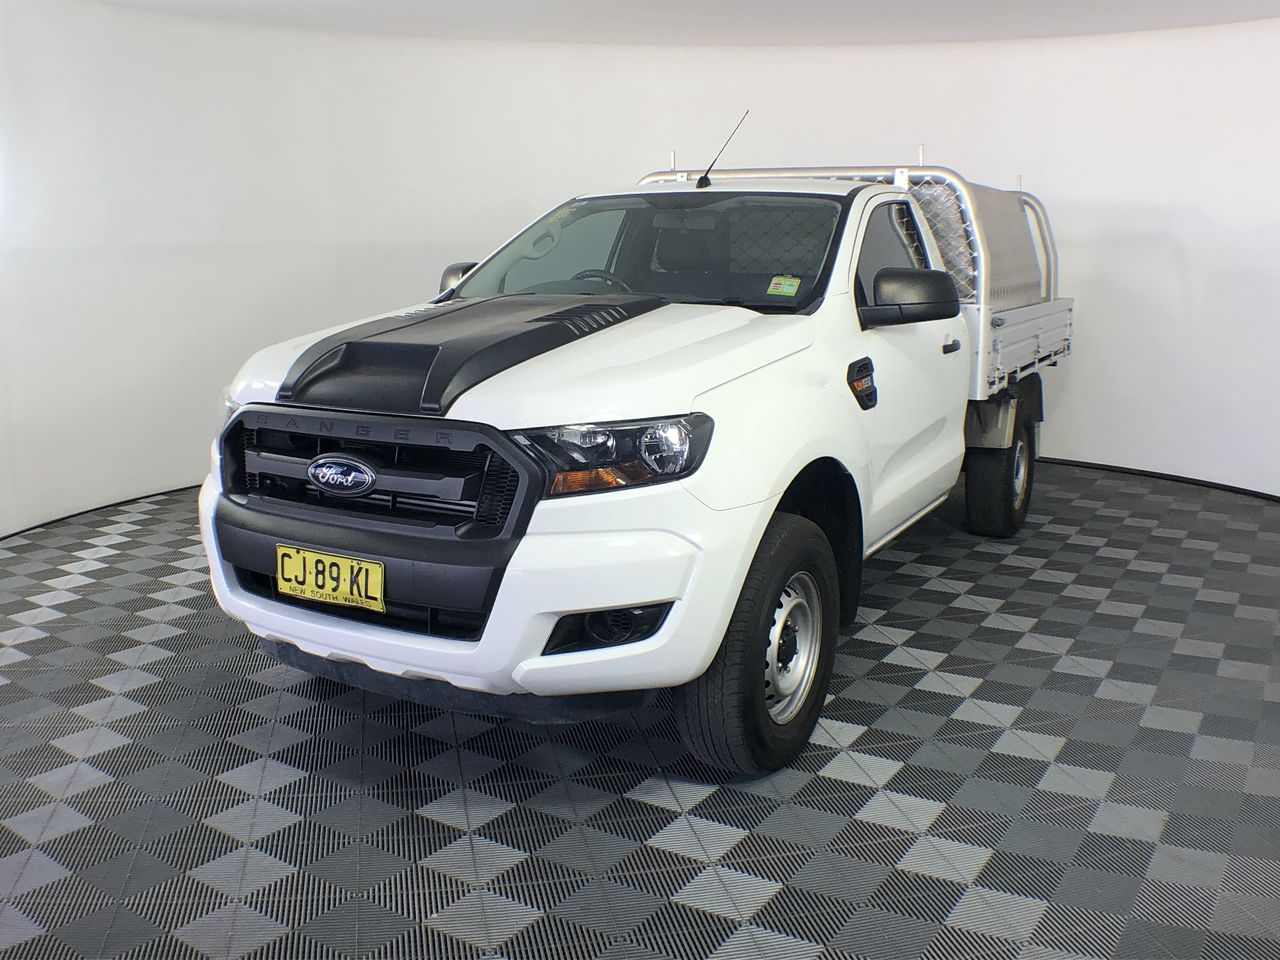 2016 Ford Ranger XL Hi-Rider PX II Turbo Diesel Auto Cab Chassis 46,199km